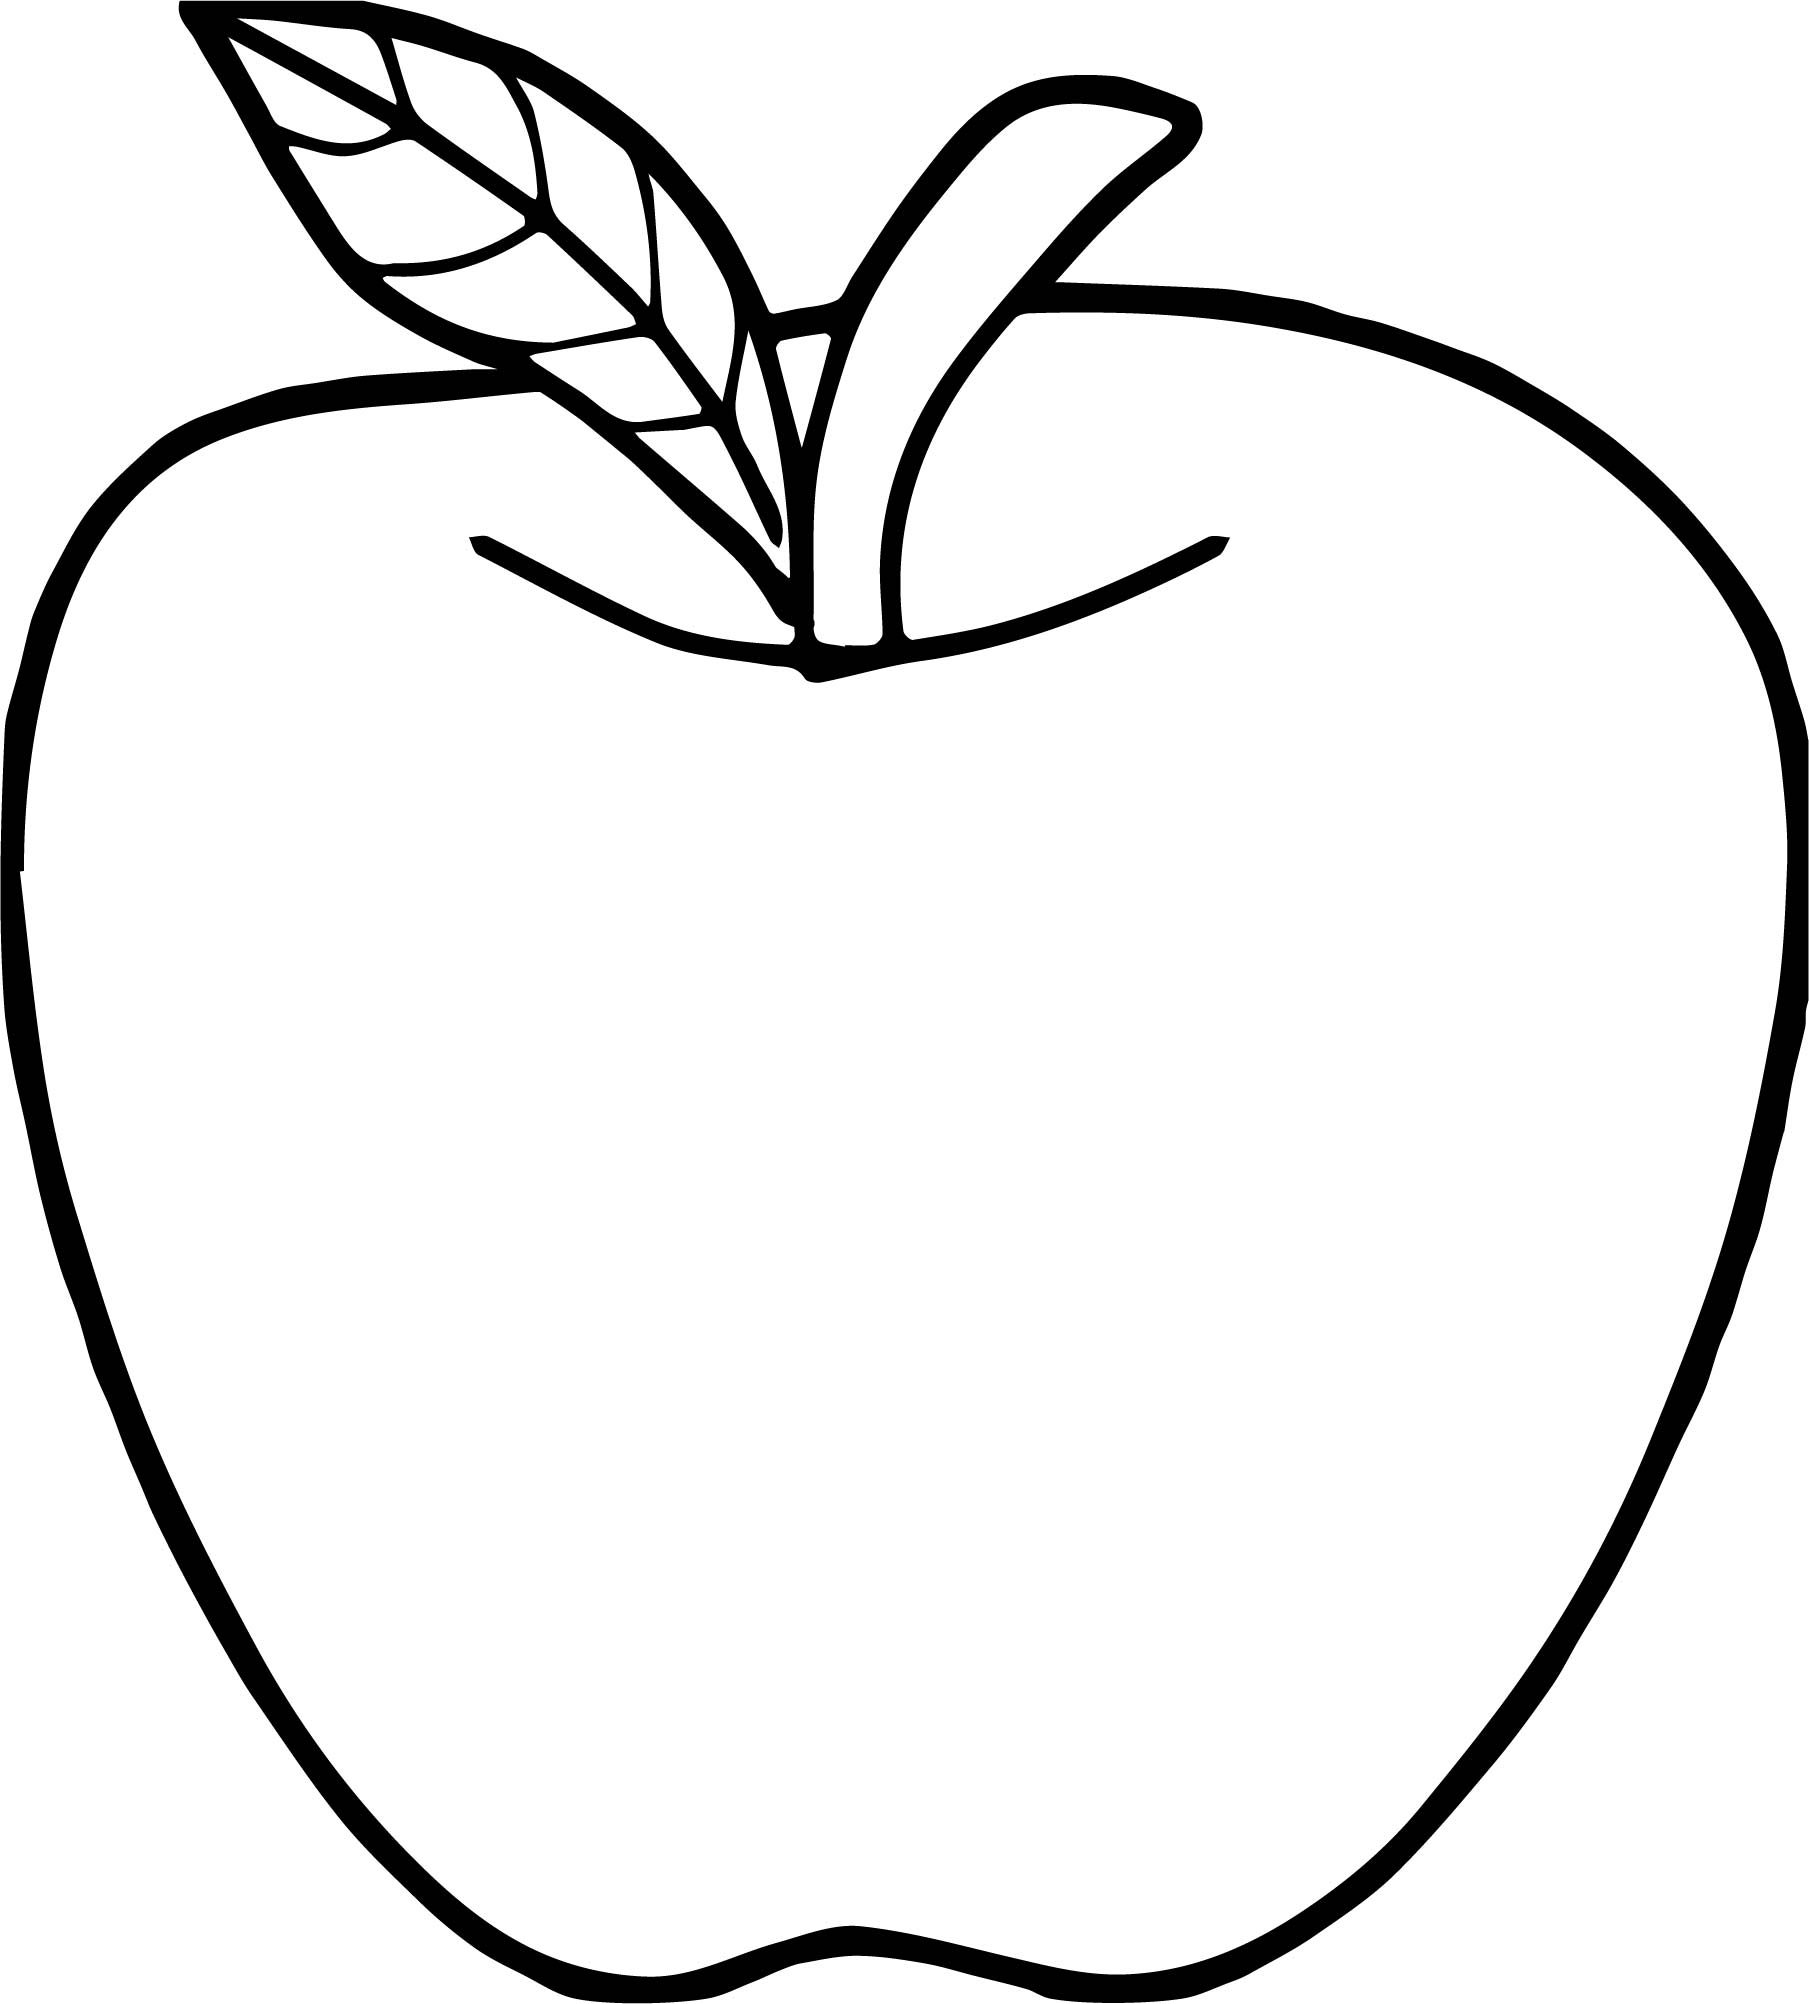 coloring pages for apples green apple coloring page free printable coloring pages apples pages for coloring